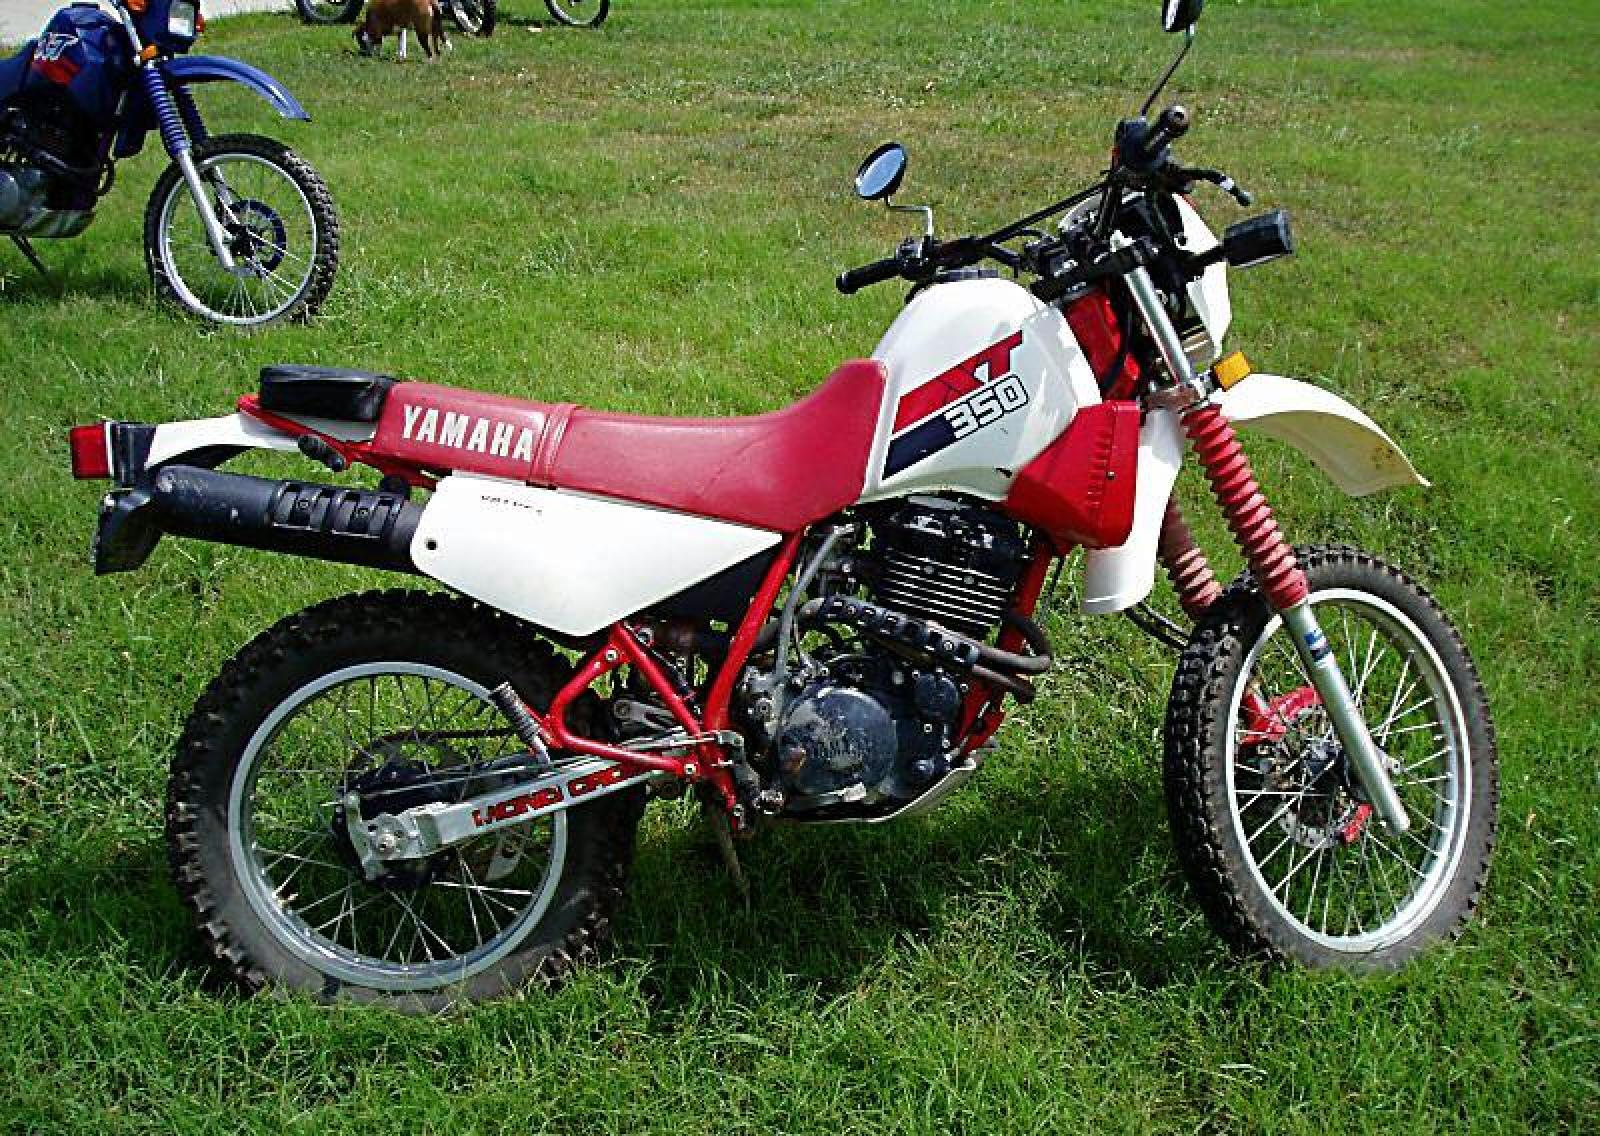 Xt350 Wiring Diagram | Machine Repair Manual on